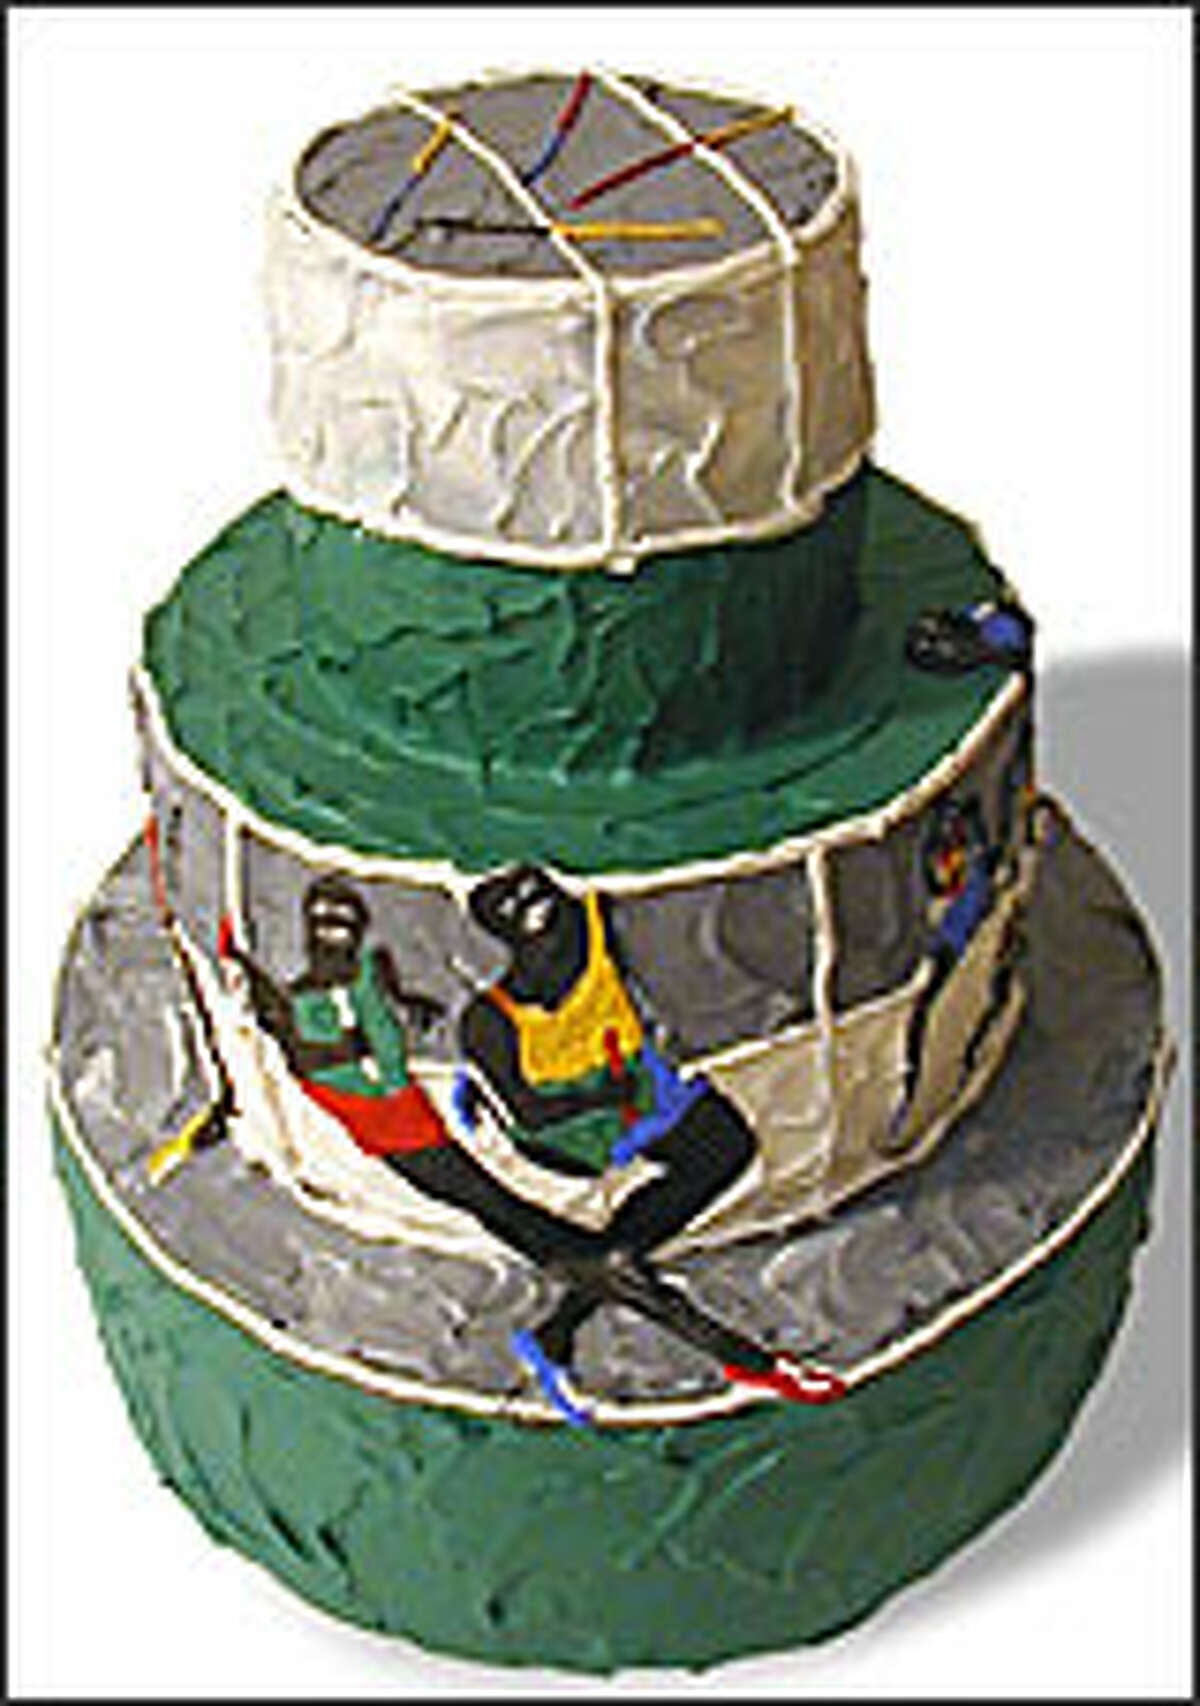 A plaster cake, honoring a painting by Jacob Lawrence, is one of 71 painted replicas celebrating the Seattle Art Museum's 70th birthday.